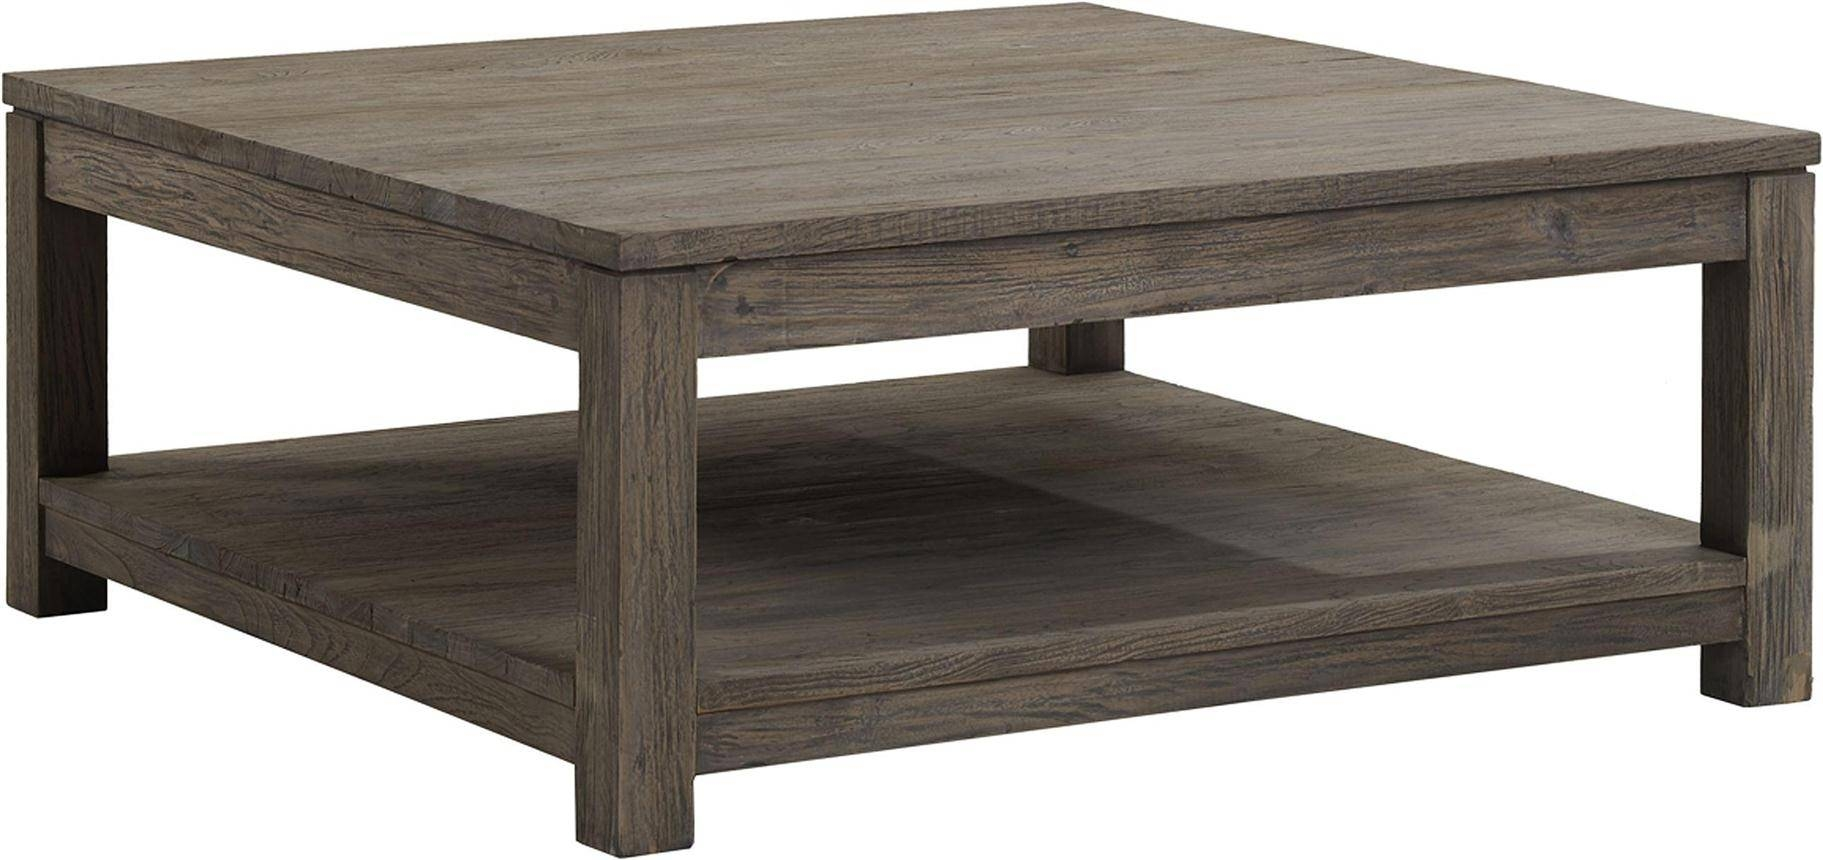 Big Square Coffee Table - Coffee Addicts intended for Huge Square Coffee Tables (Image 1 of 15)